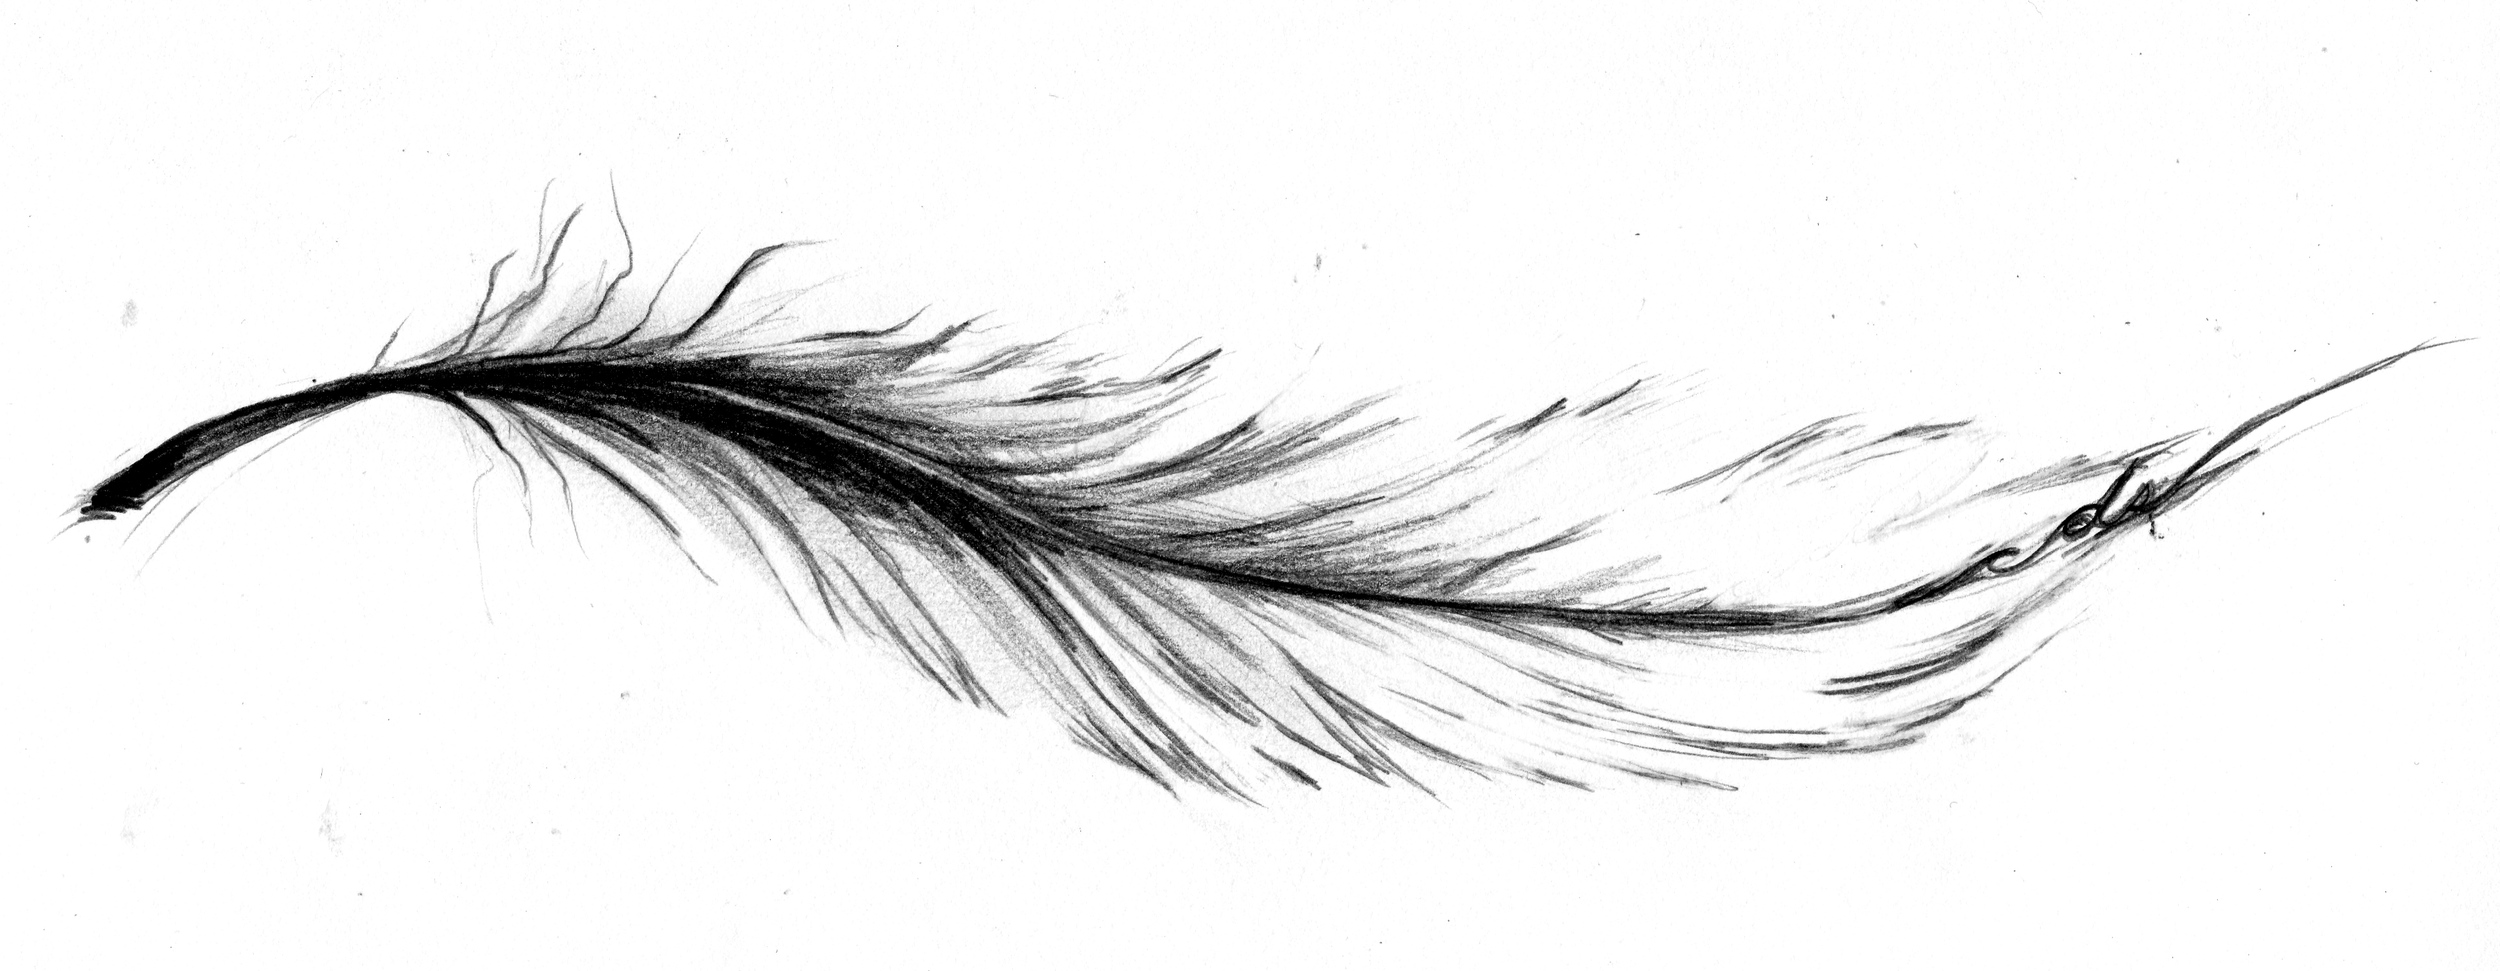 A commissioned sketch of simple Feather with multiple hidden meanings;life is full of ups and downs &darkness and light, a perfect feather doesn't exist and neither does a perfect life, and the initials 'cds' at the end for a significant friend whose life was cut short.